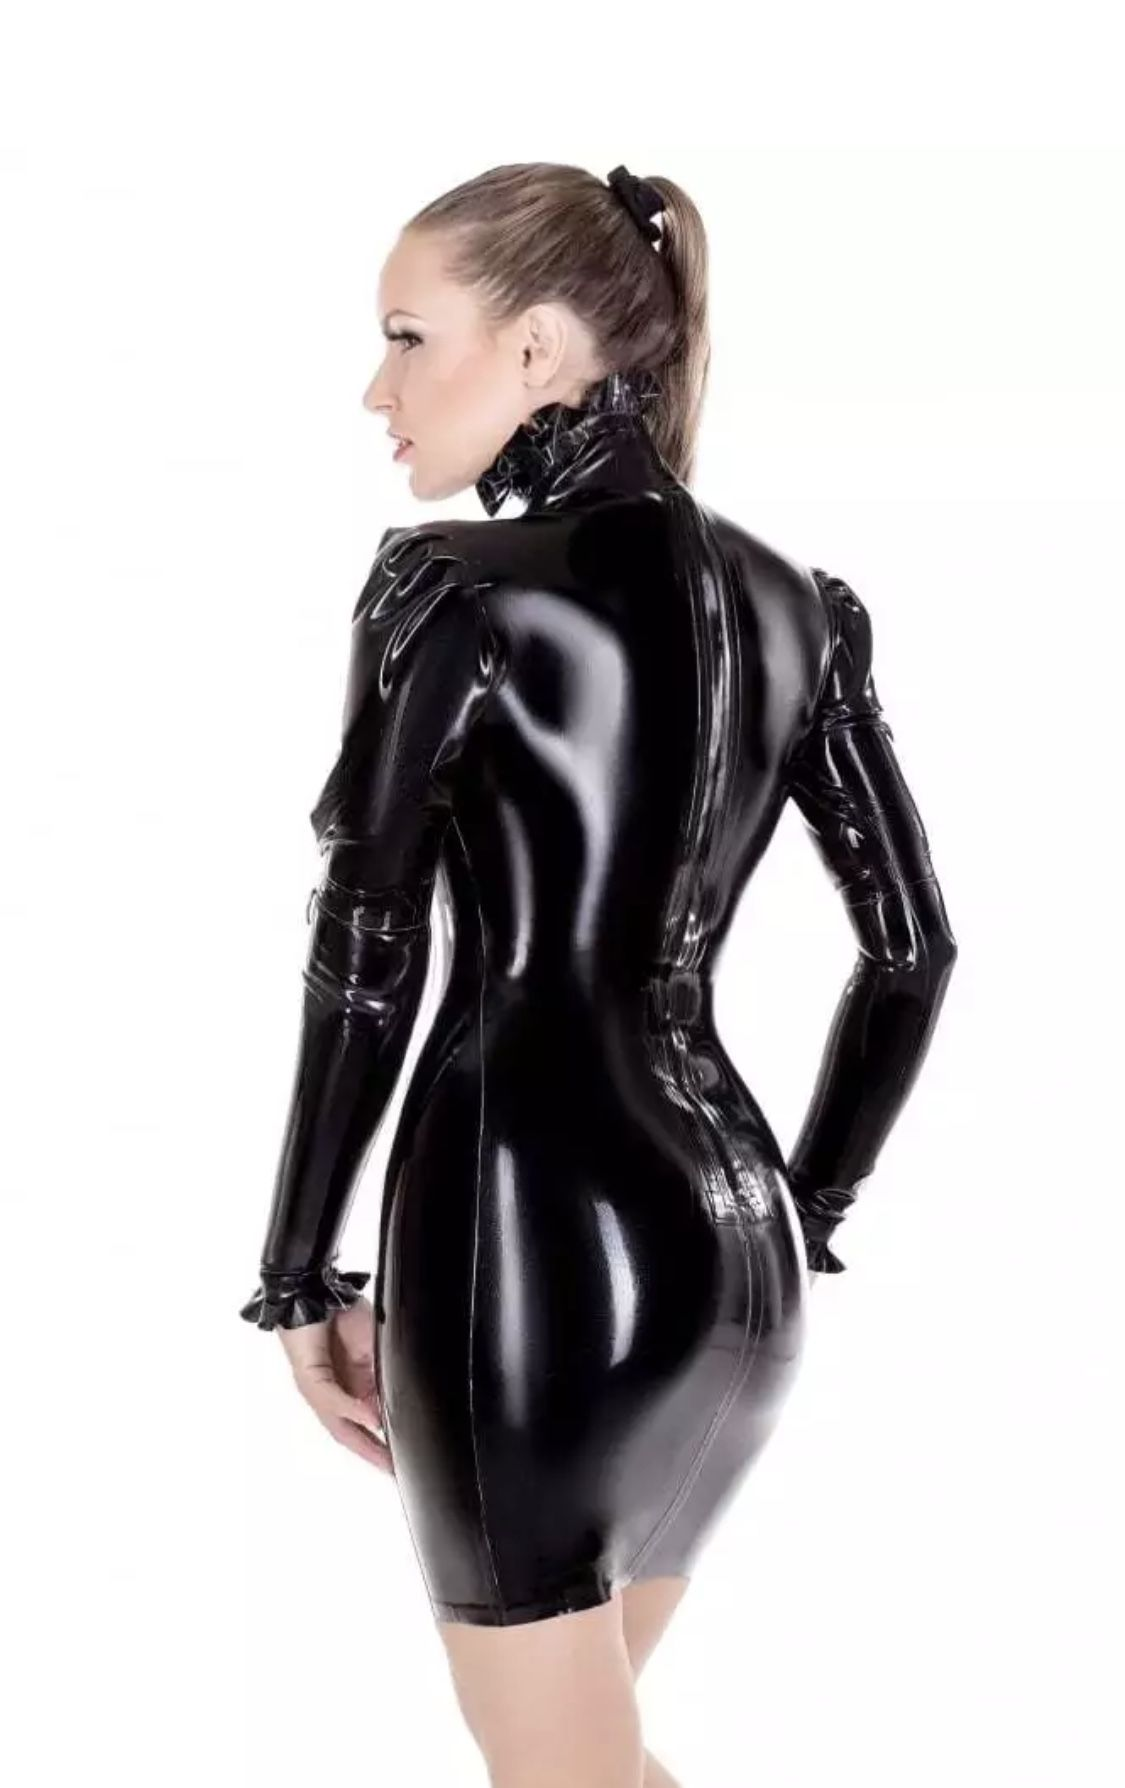 ff04342ca42c3 Pin by j on latex and shiny 2 | Latex, Catsuit, Fashion outfits